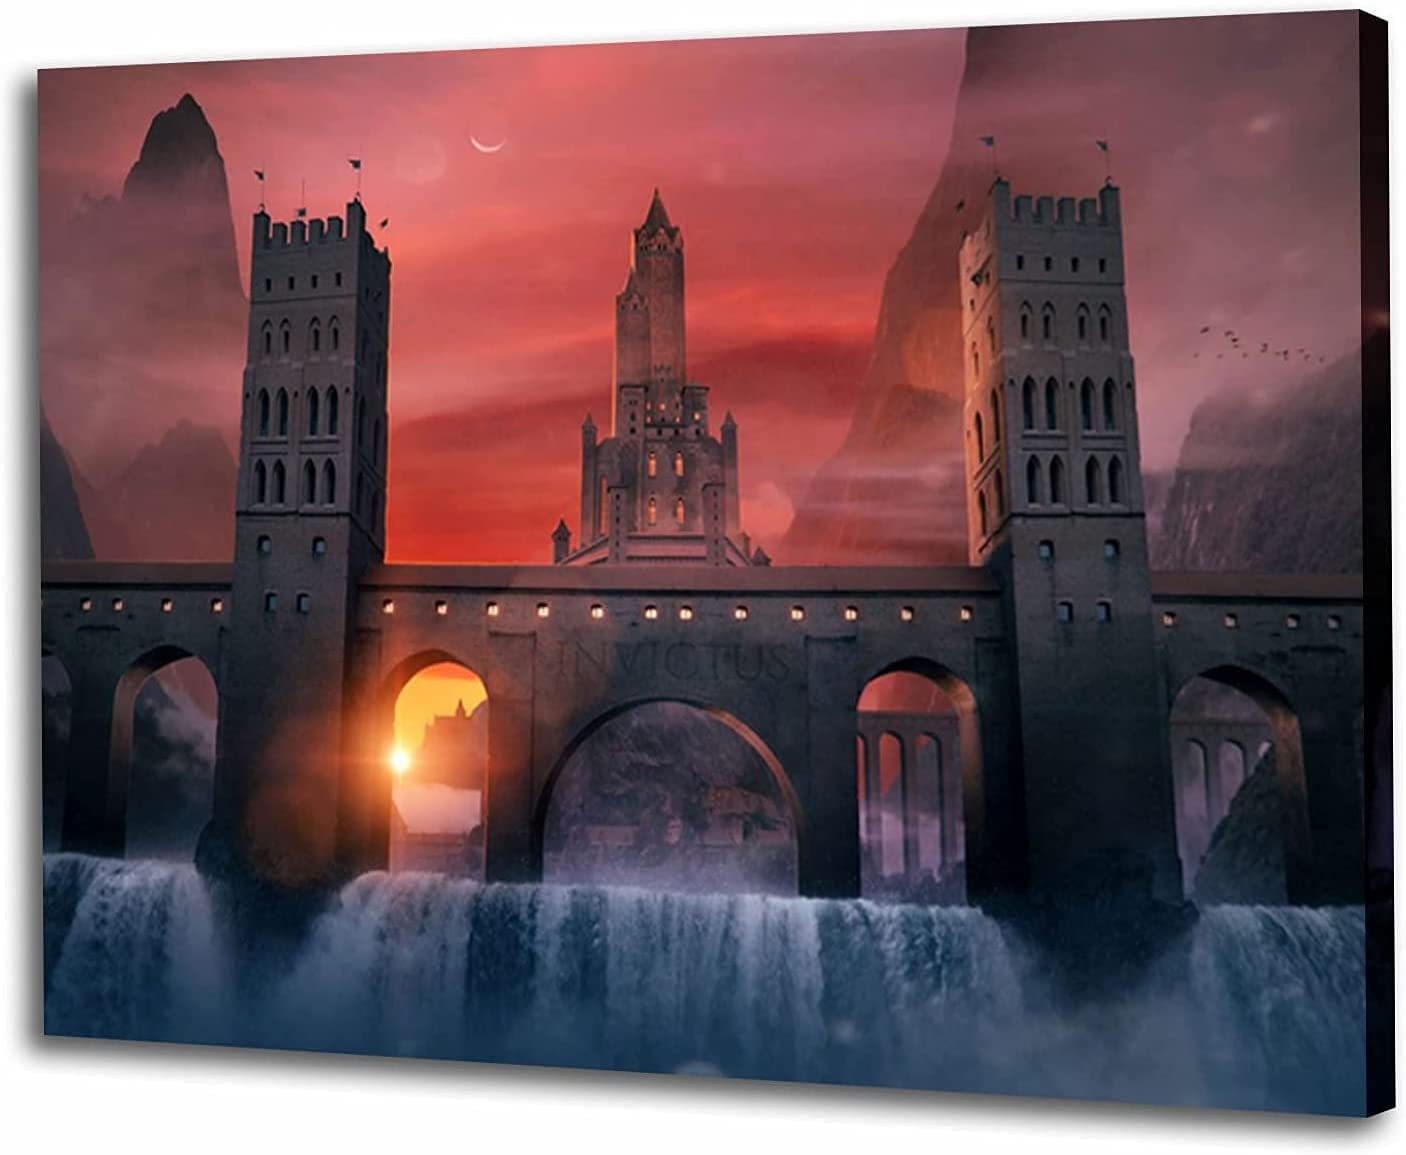 Sunset Castle Canvas Posters and Black Ranking TOP3 White Painting Outlet SALE Prints